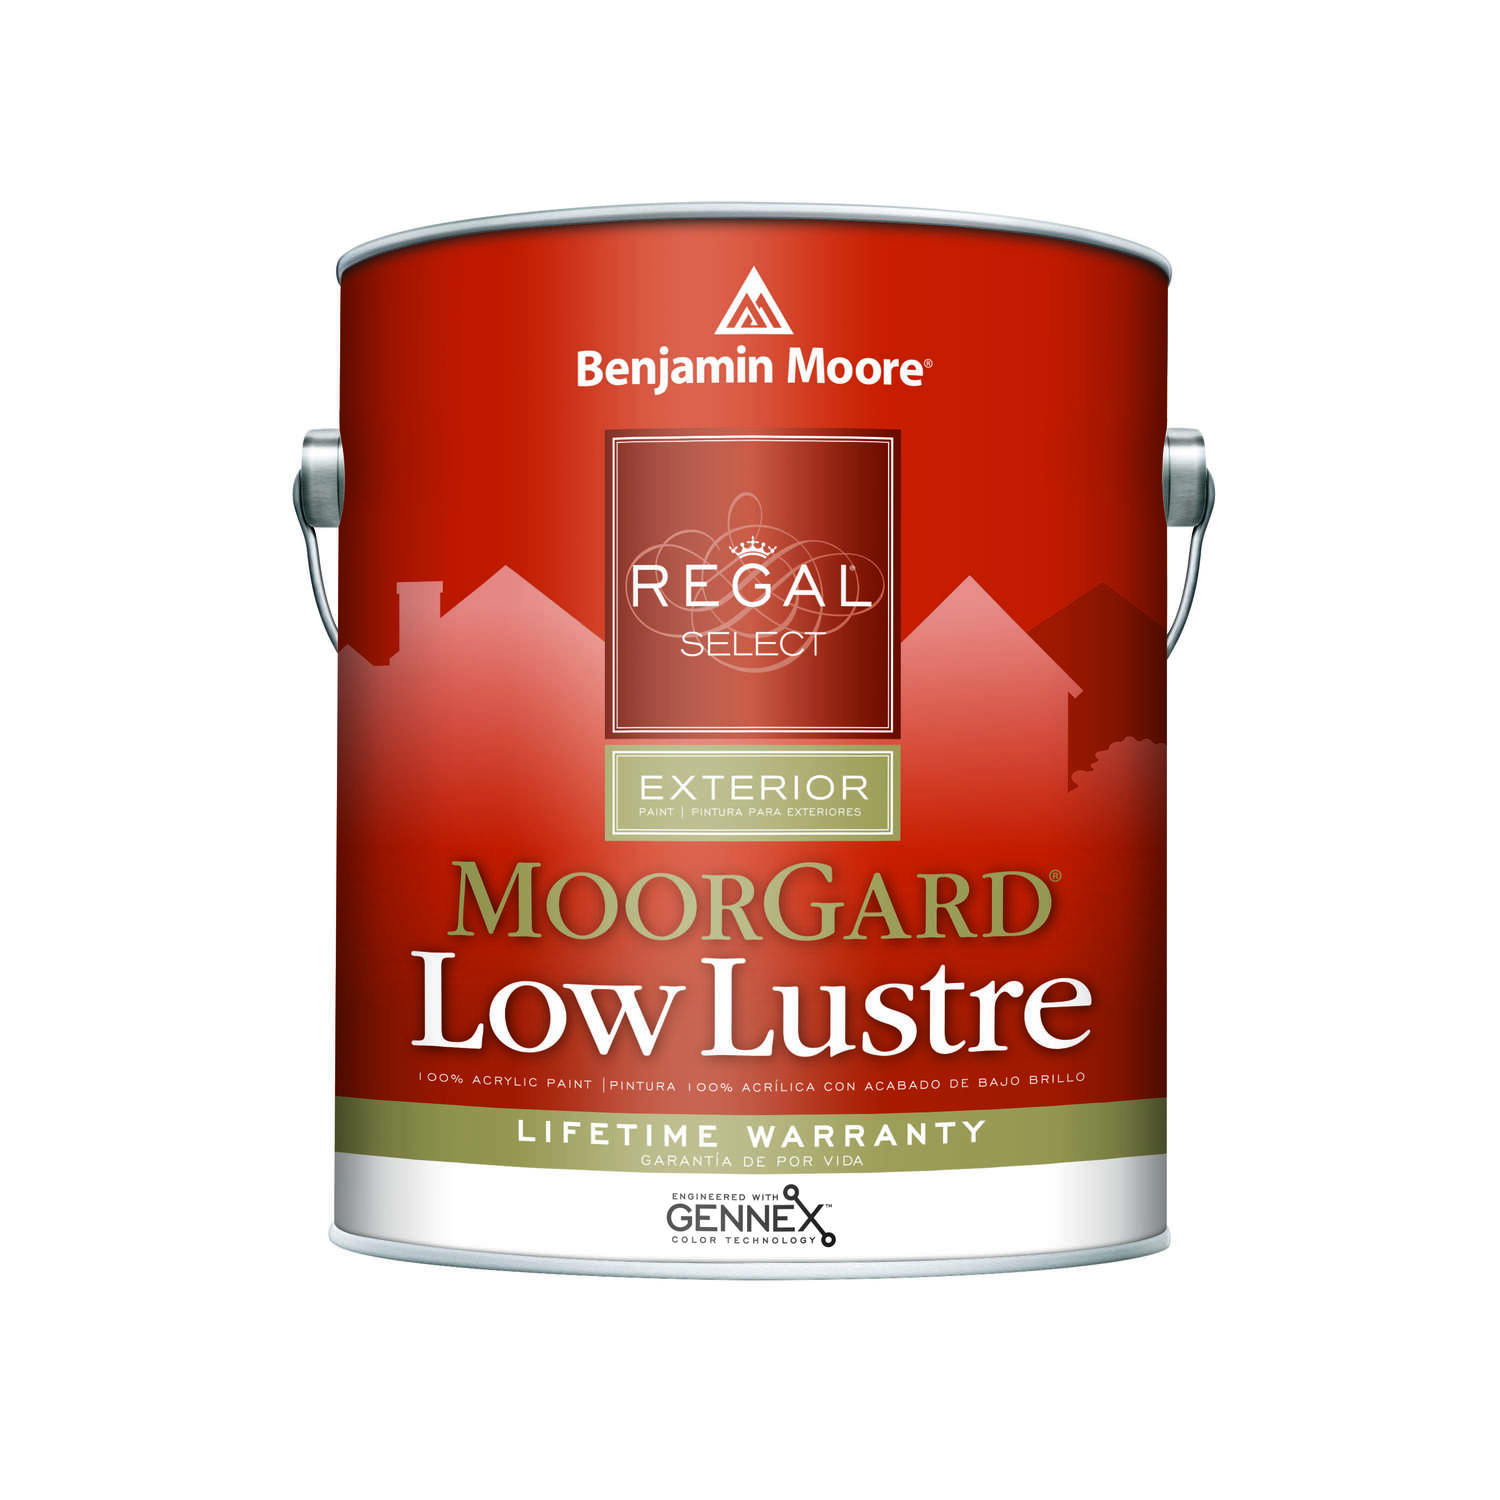 Benjamin Moore  Regal  Low Luster  Tintable Base  Base 1  Acrylic  Paint  Outdoor  1 gal.